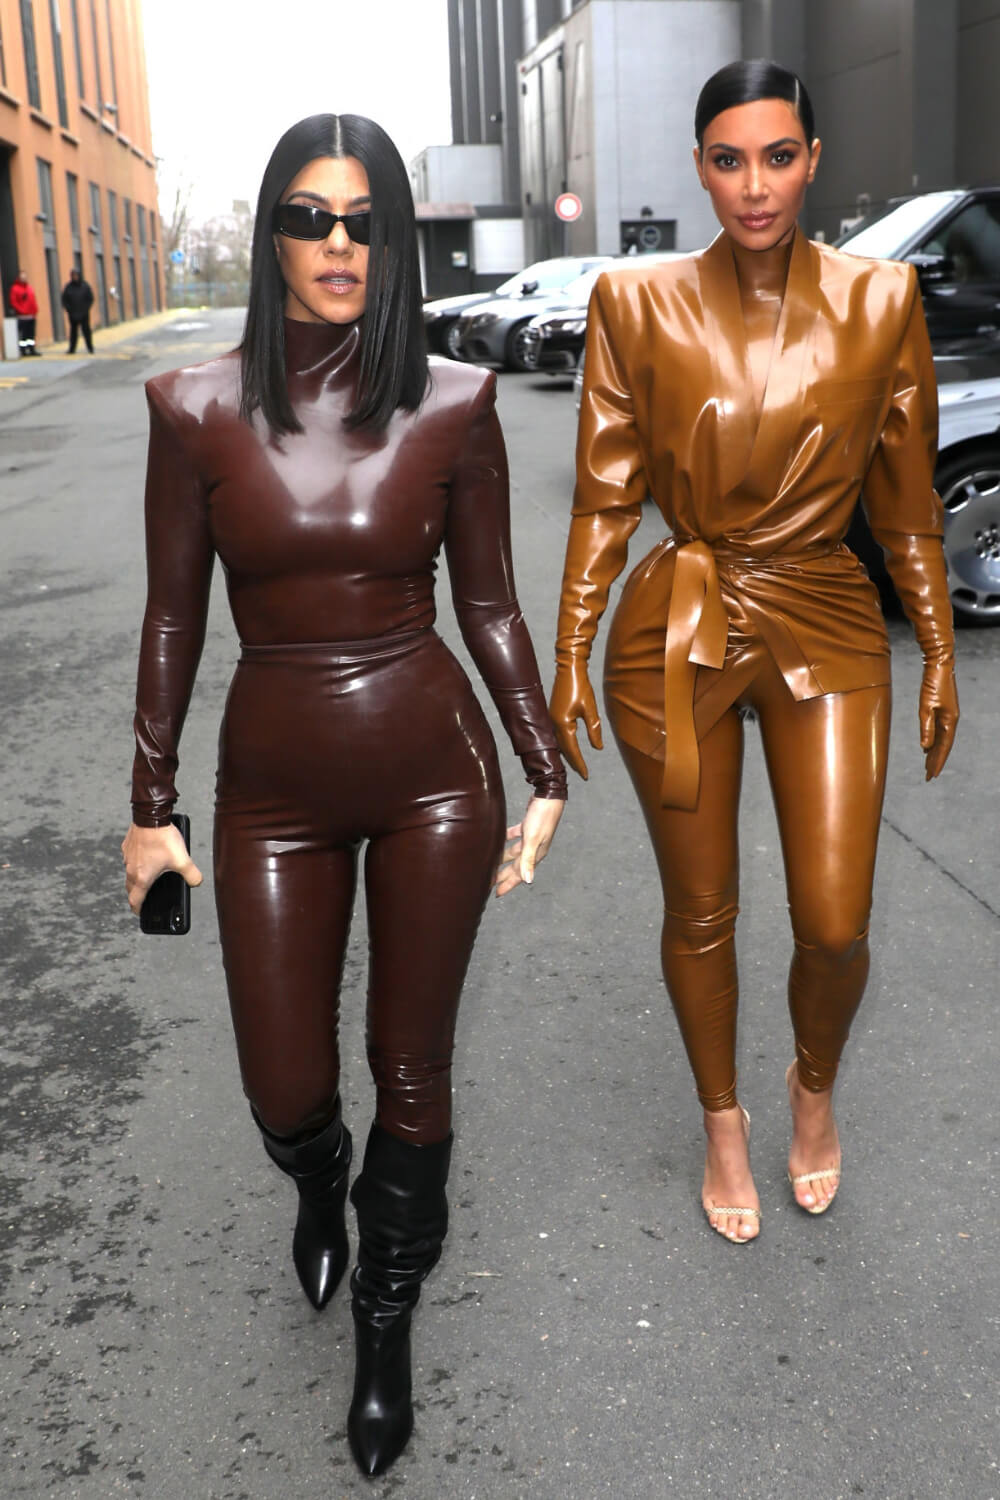 Kim Kardashian & Kourtney Kardashian seen out & about in Paris